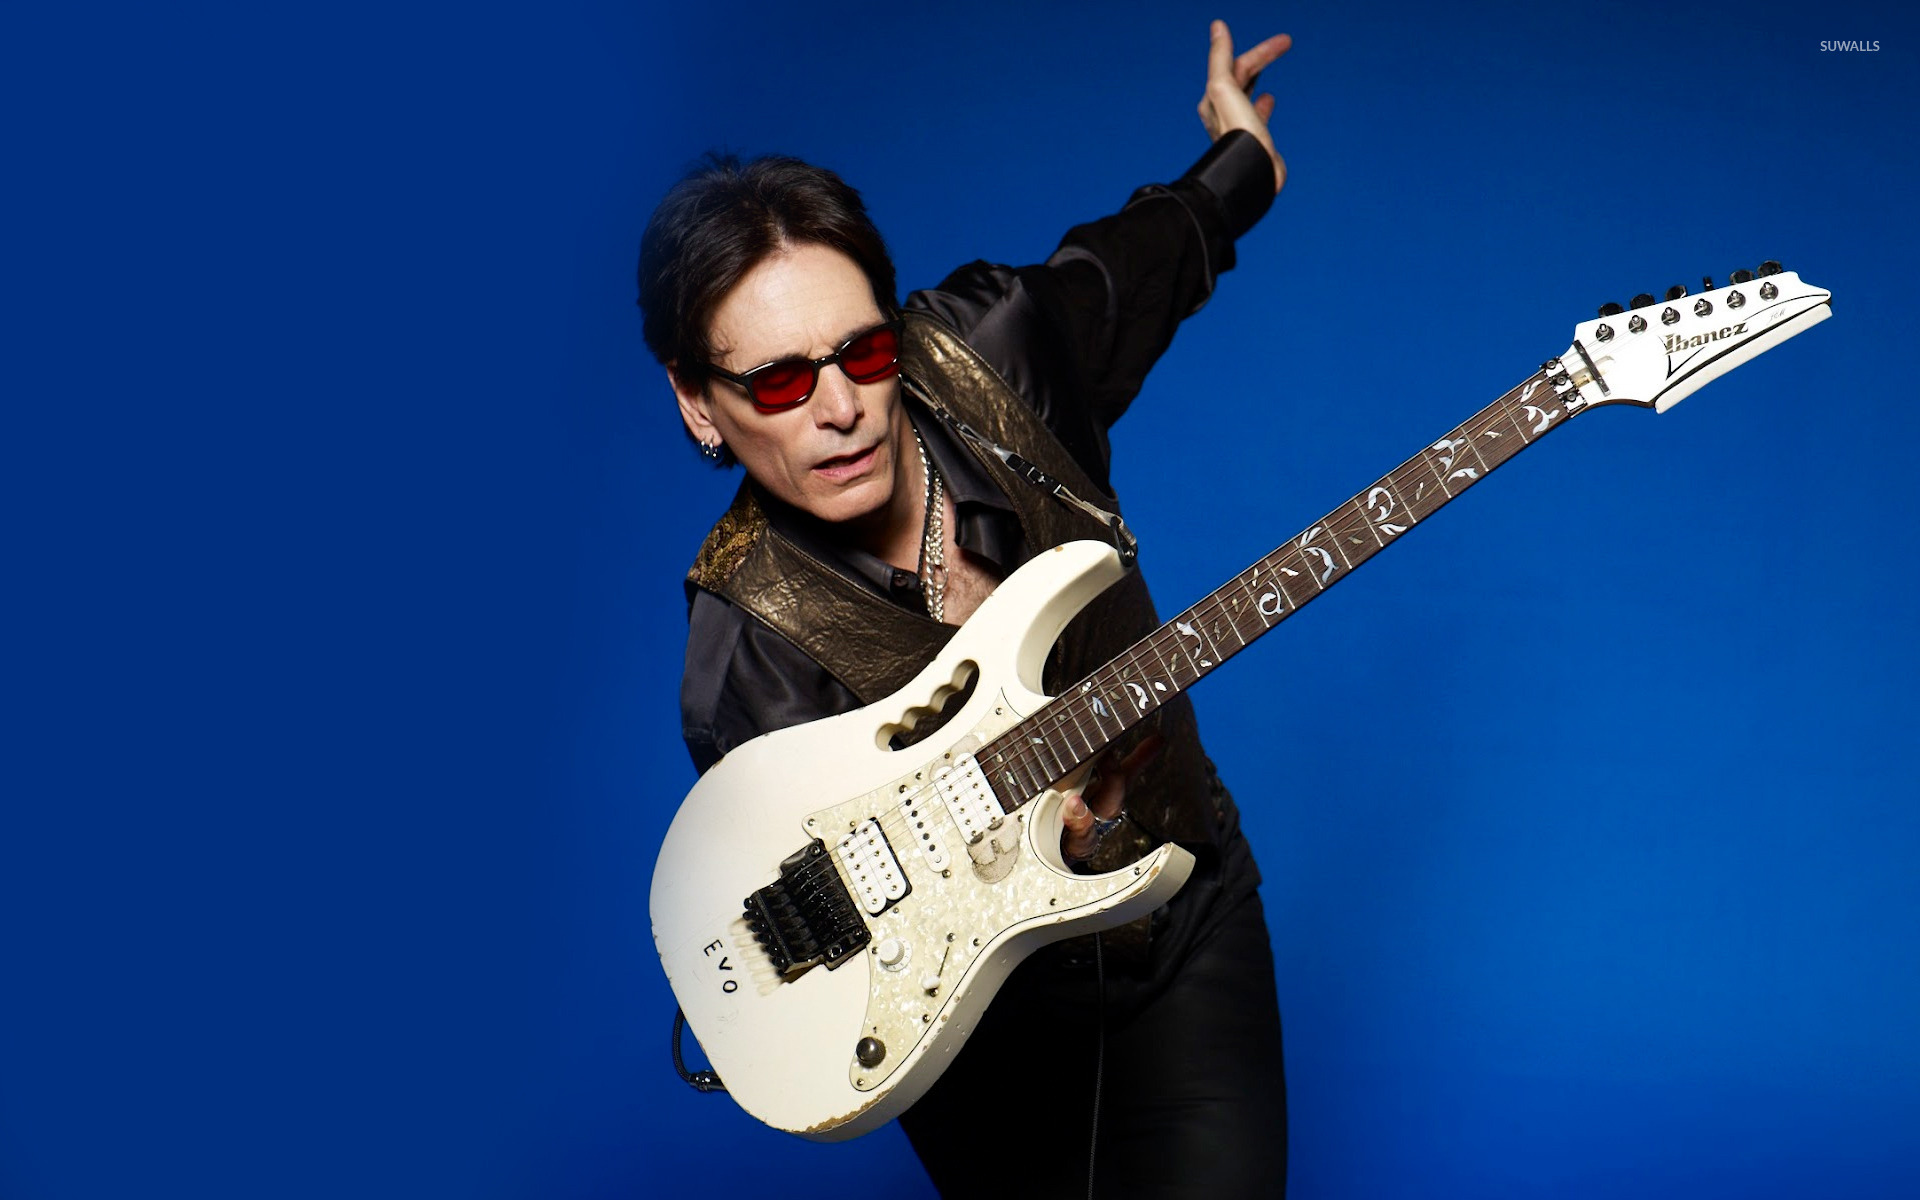 Steve Vai 4 Wallpaper Music Wallpapers 20988